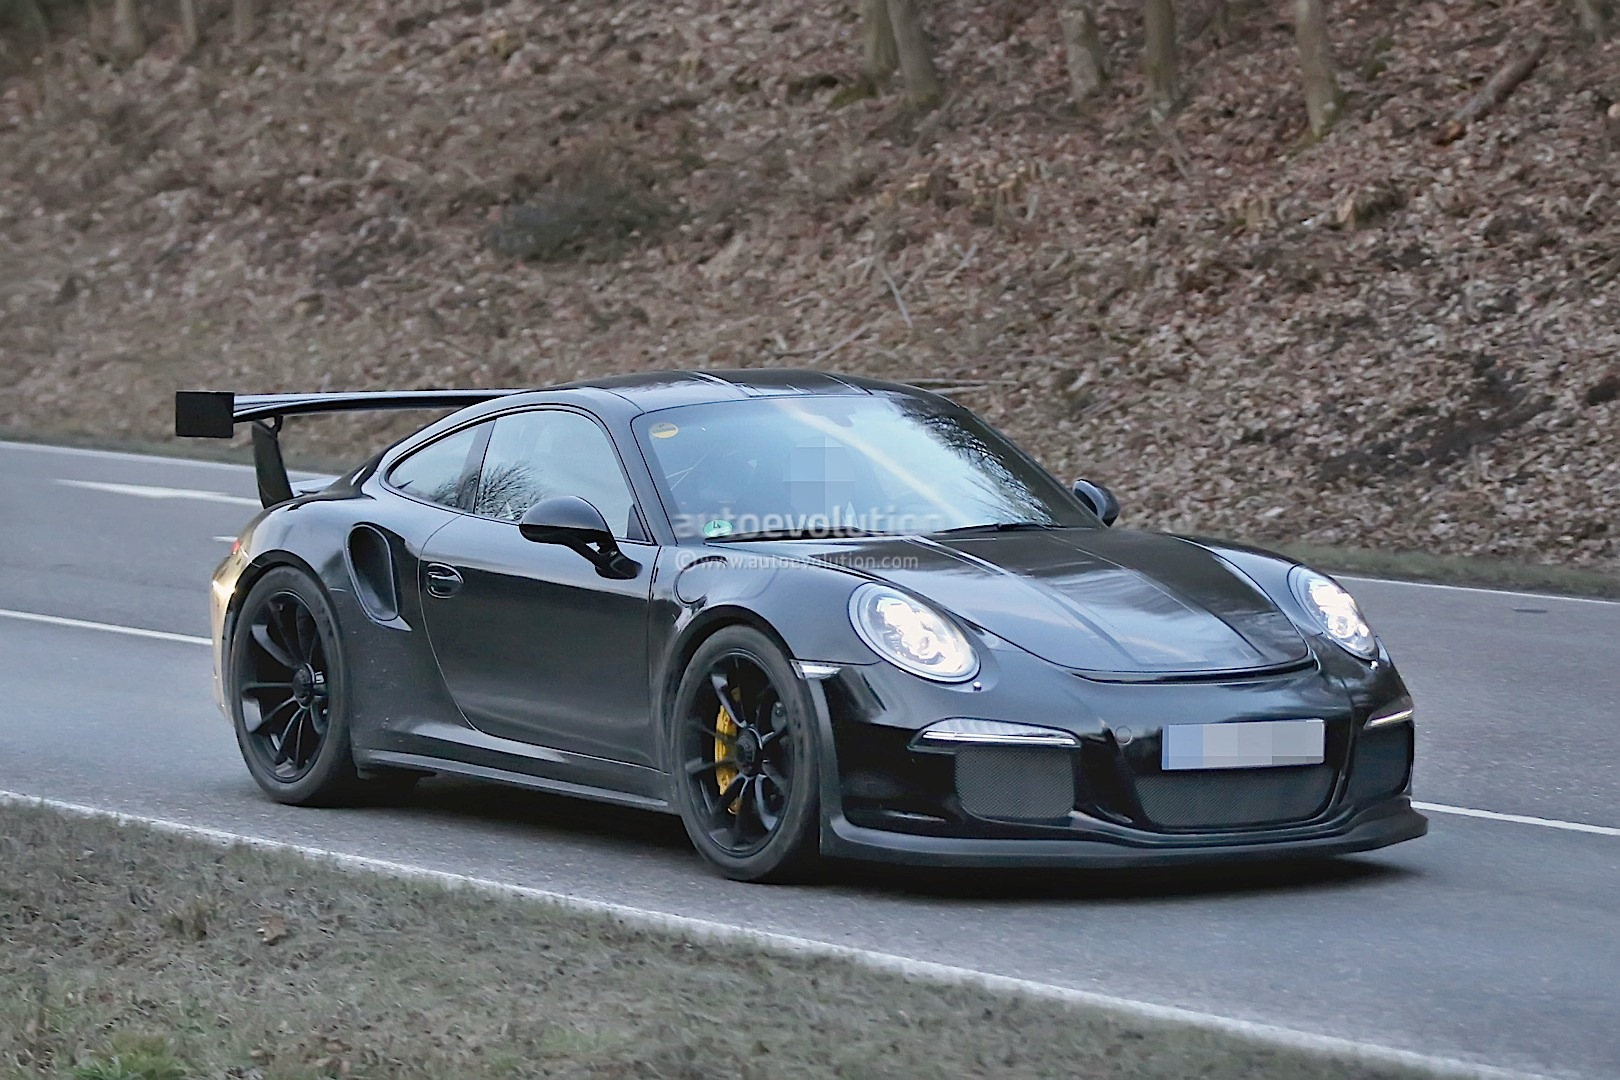 porsche spied testing new 911 gt2 autoevolution. Black Bedroom Furniture Sets. Home Design Ideas